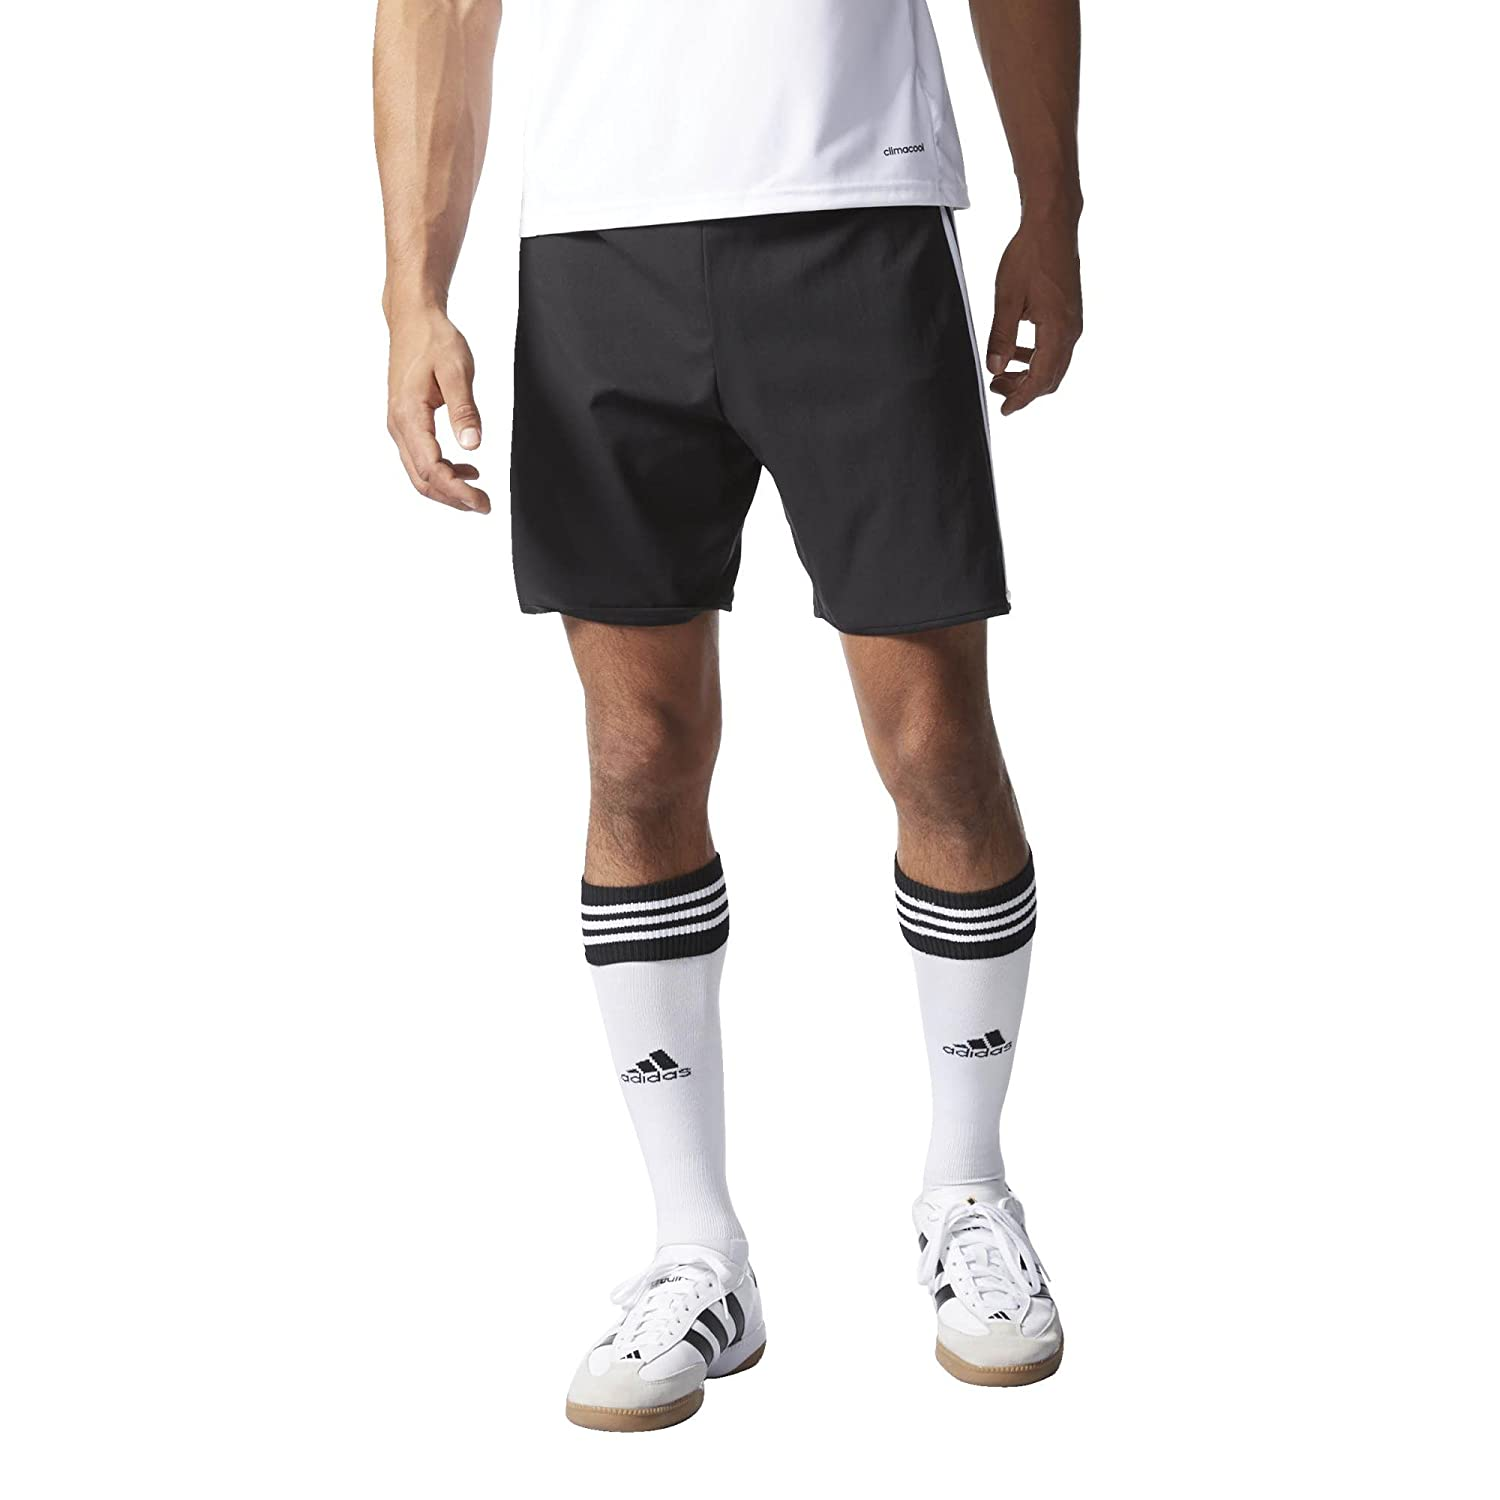 Amazon.com   adidas CONDIVO 16 Shorts   Clothing 4eeed0387a76